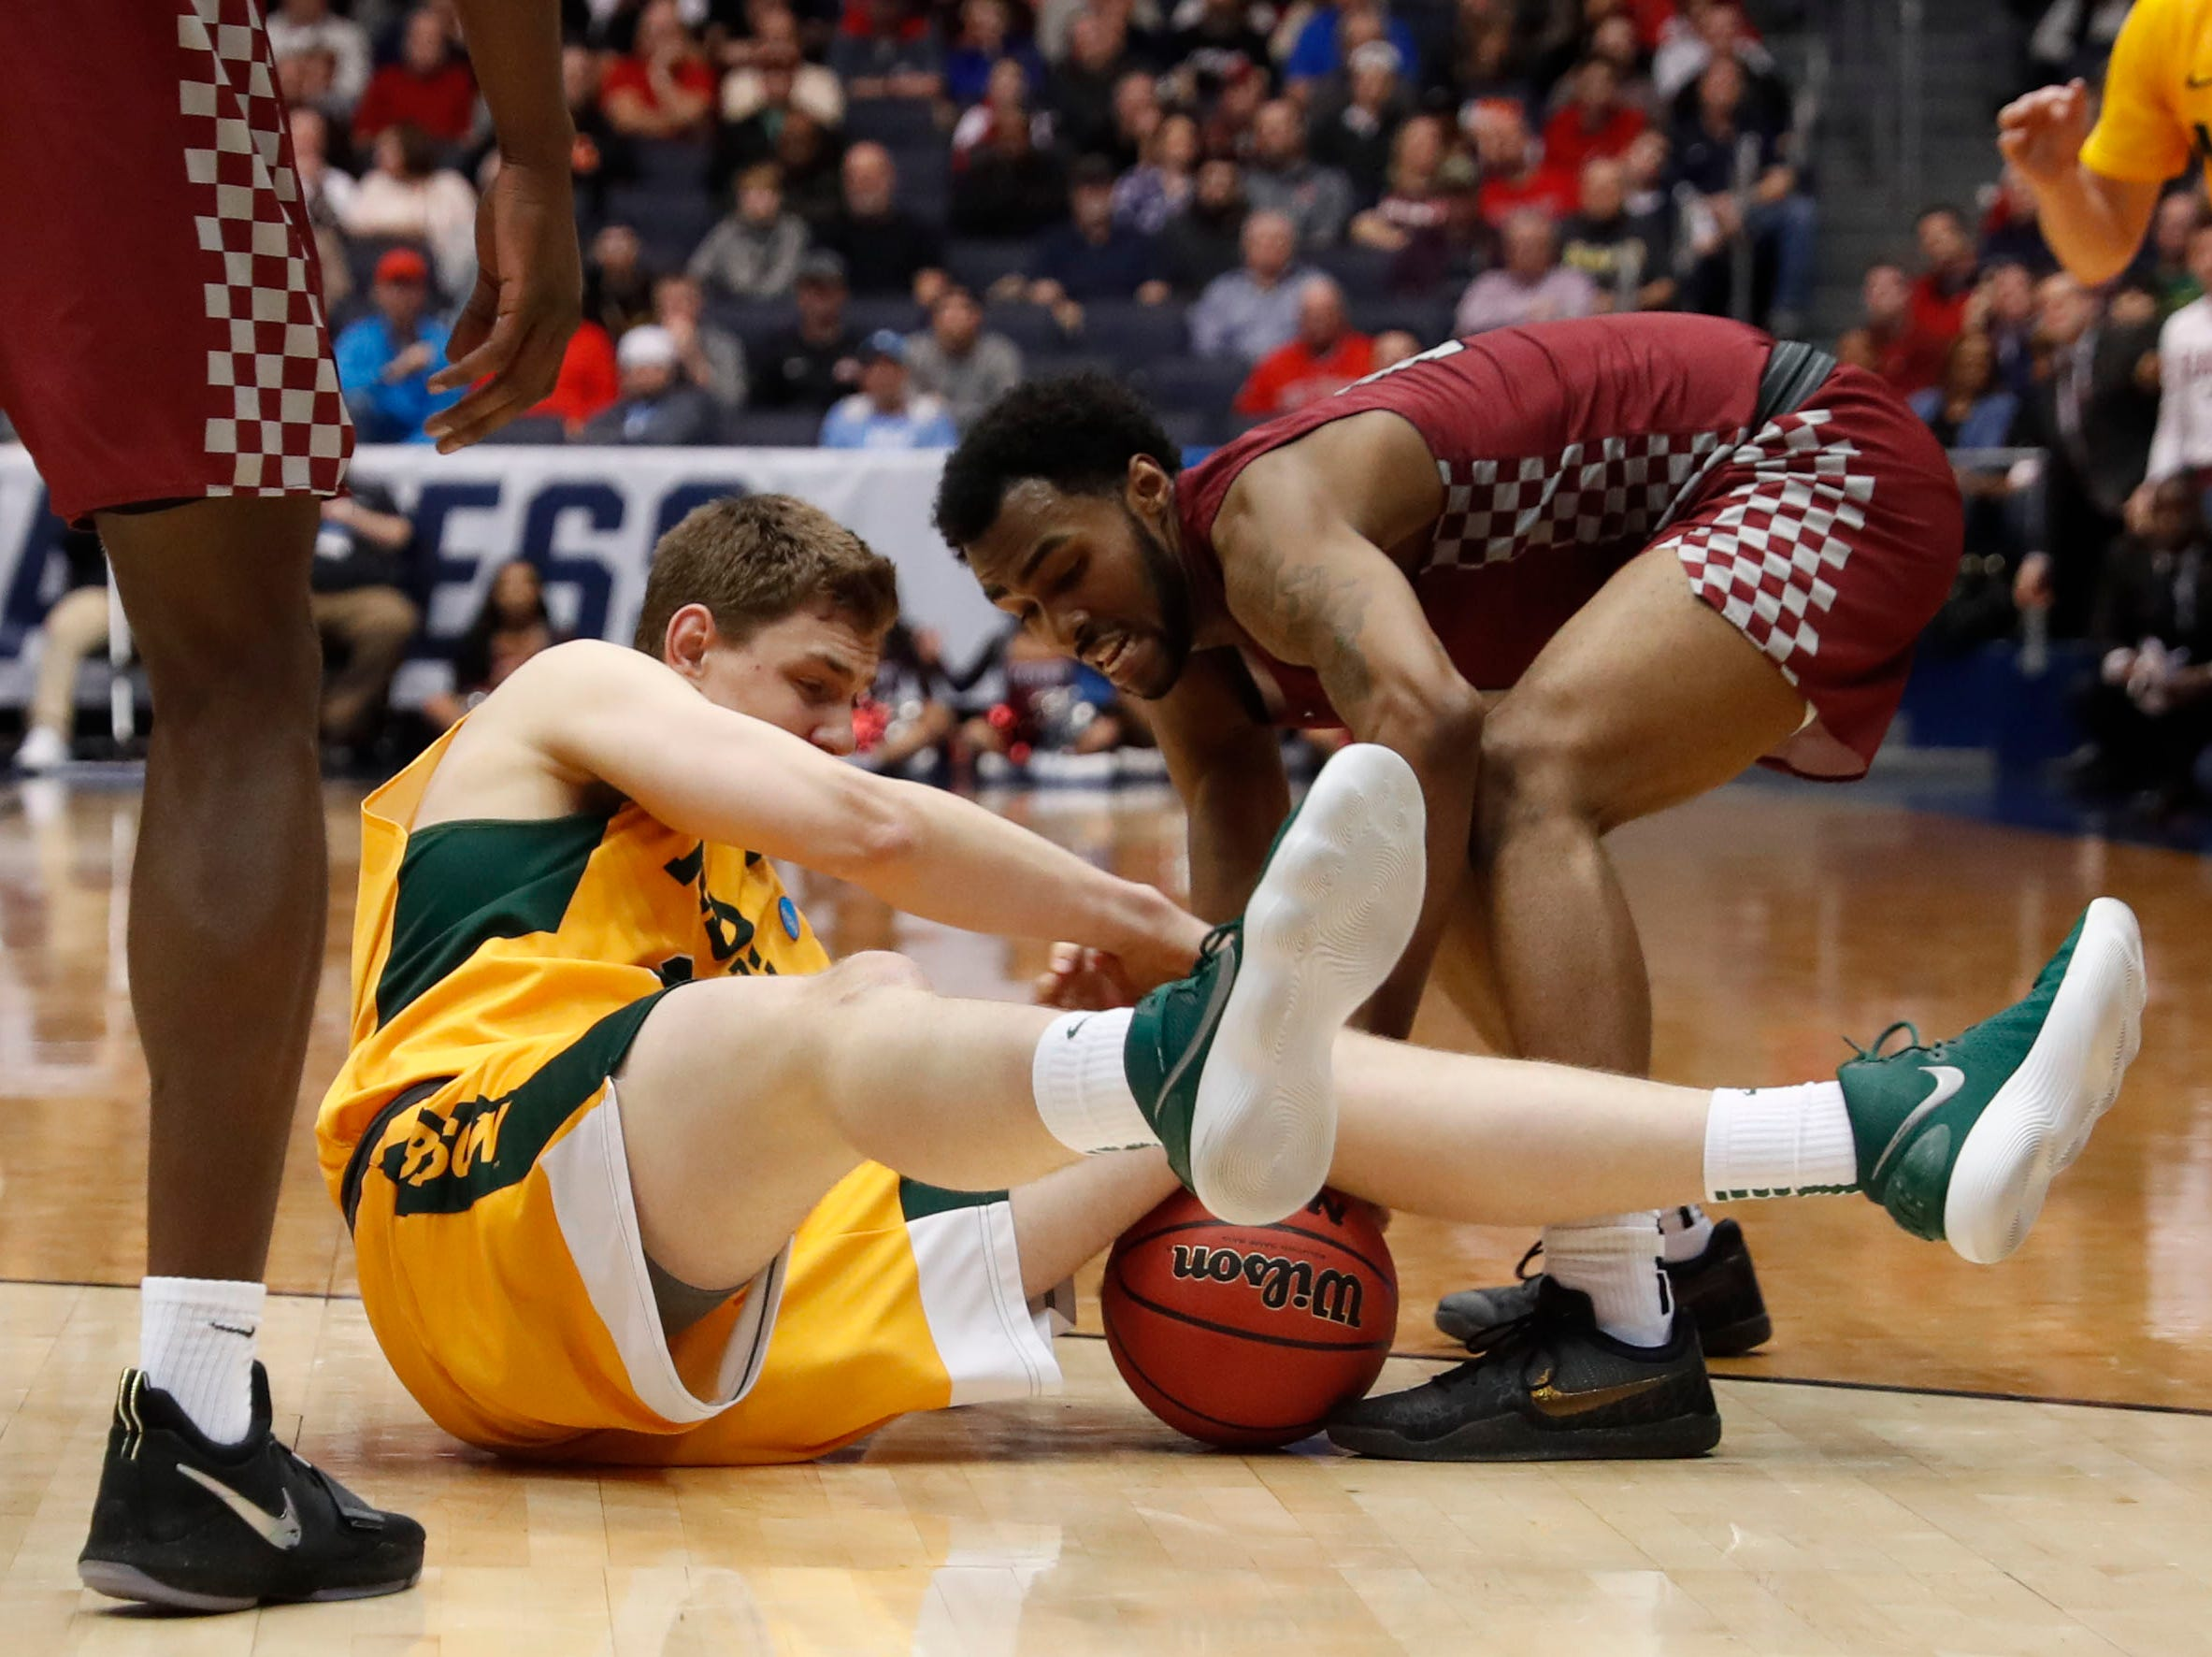 North Dakota State Bison forward Rocky Kreuser (34) and North Carolina Central Eagles guard Randy Miller Jr. (11) battle for the ball in the second half.